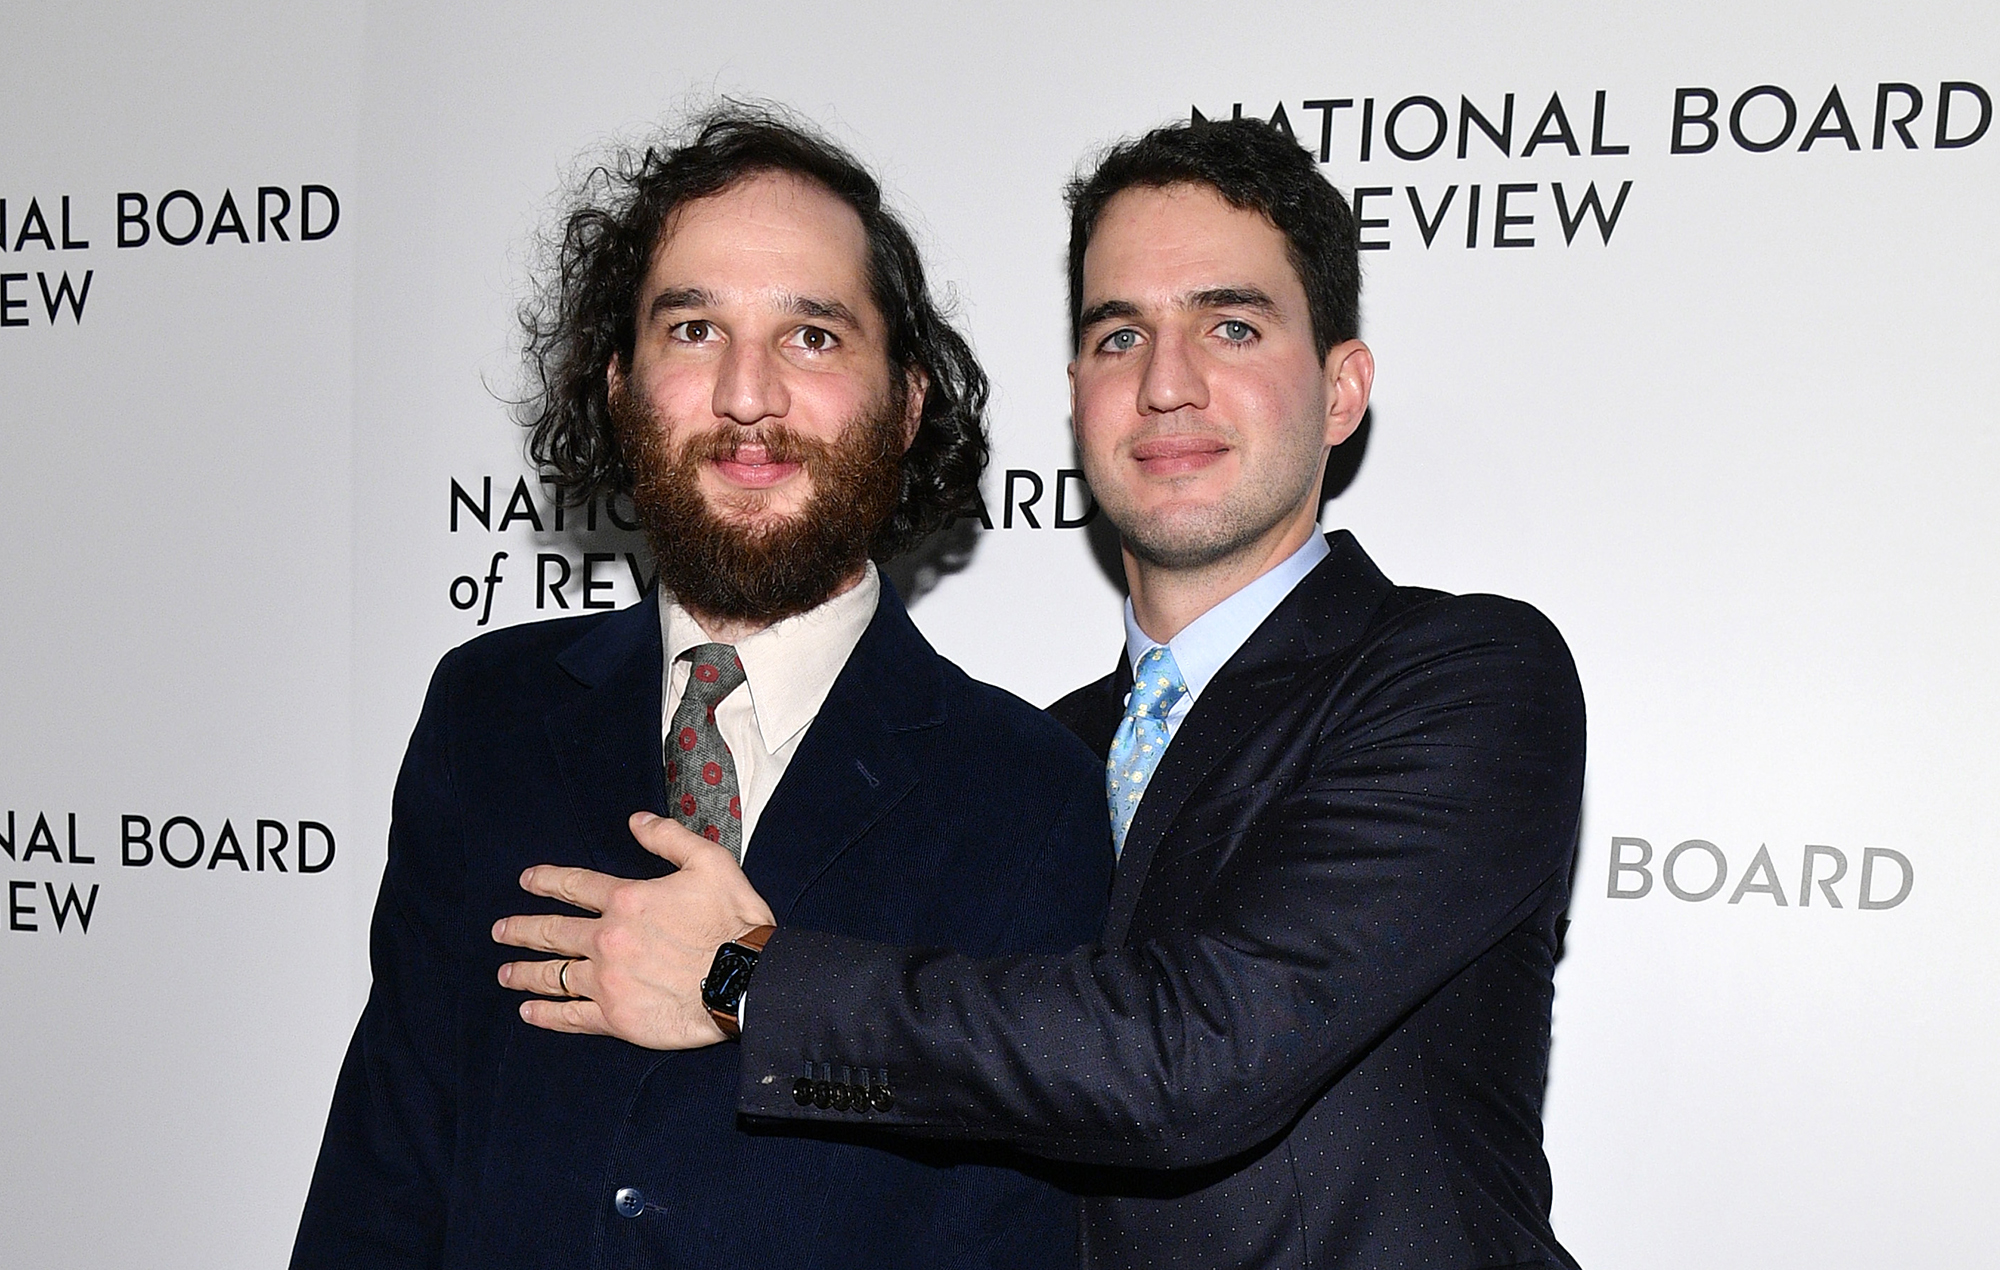 'Uncut Gems' Safdie Brothers to make TV series about cursed newlyweds